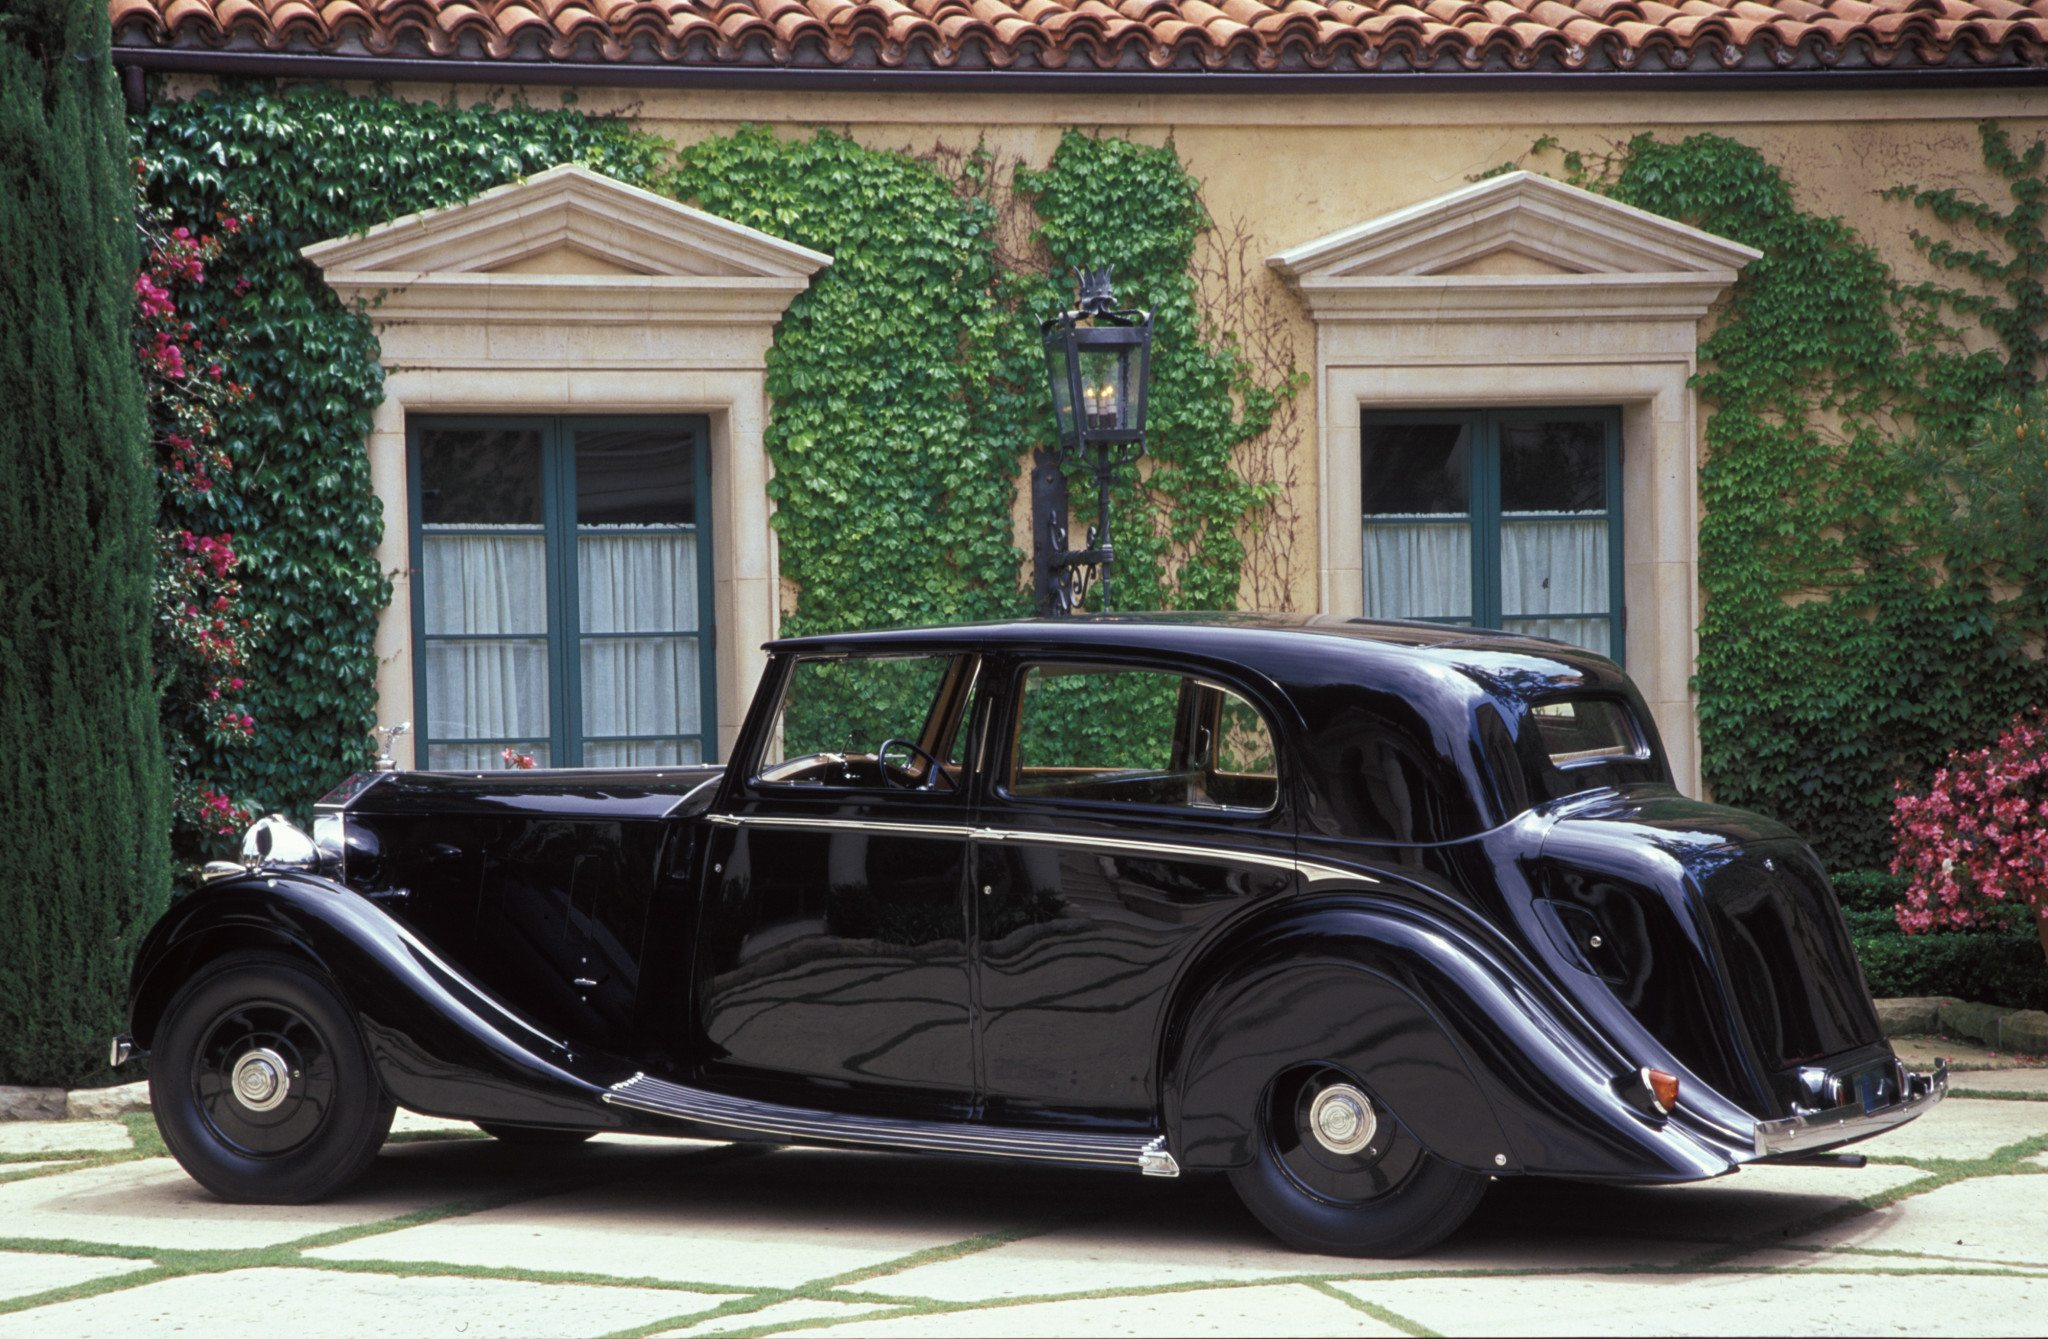 Rolls-Royce Brewster-bodied Sedanca De Ville built in 1937